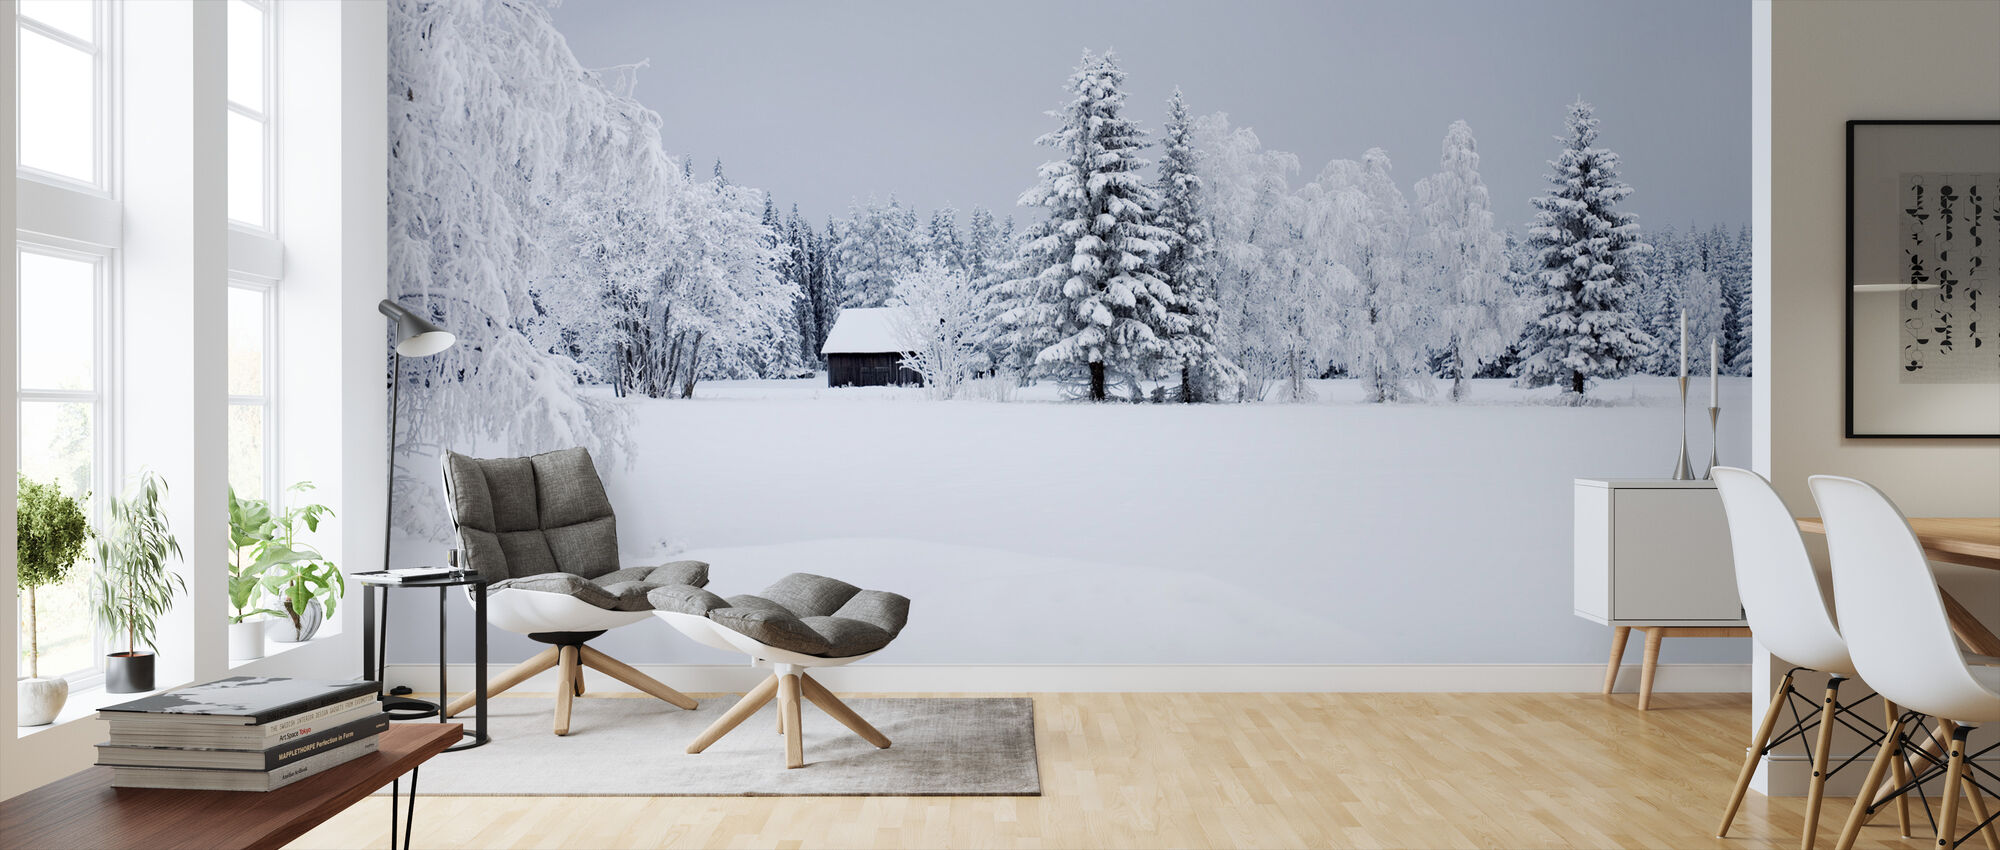 Snow Covered Barn House, Sweden - Wallpaper - Living Room